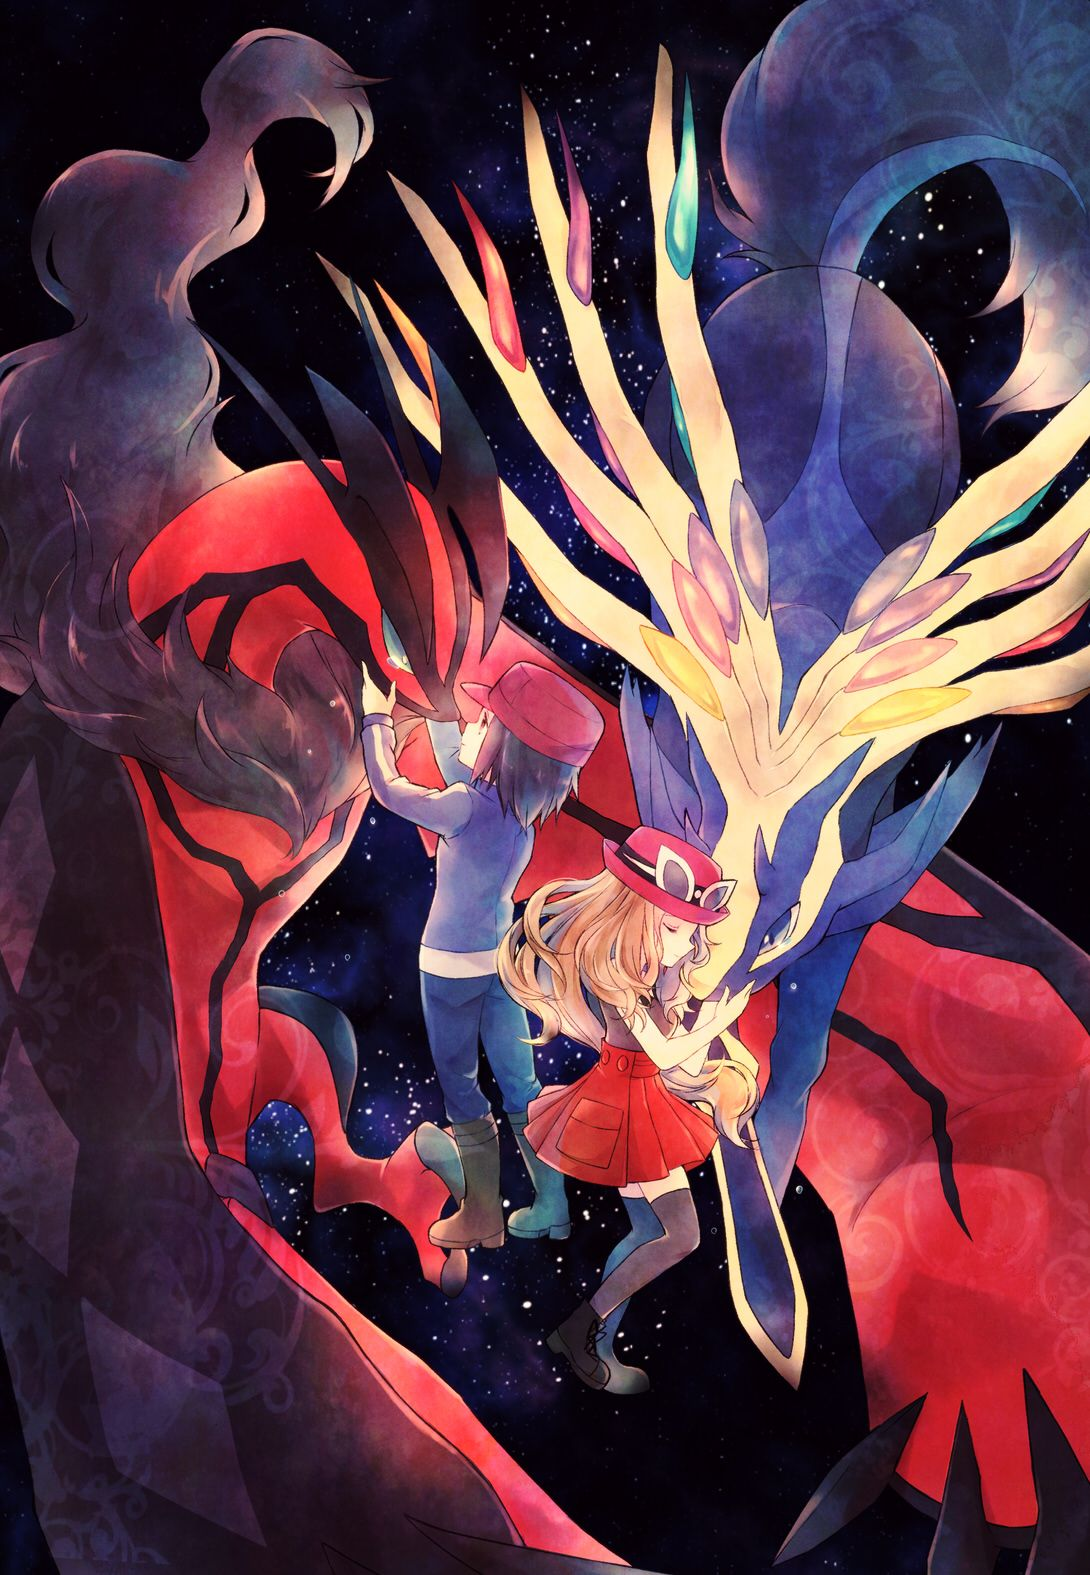 Calem And Serena Consoling Xerneas And Yveltal Aww The